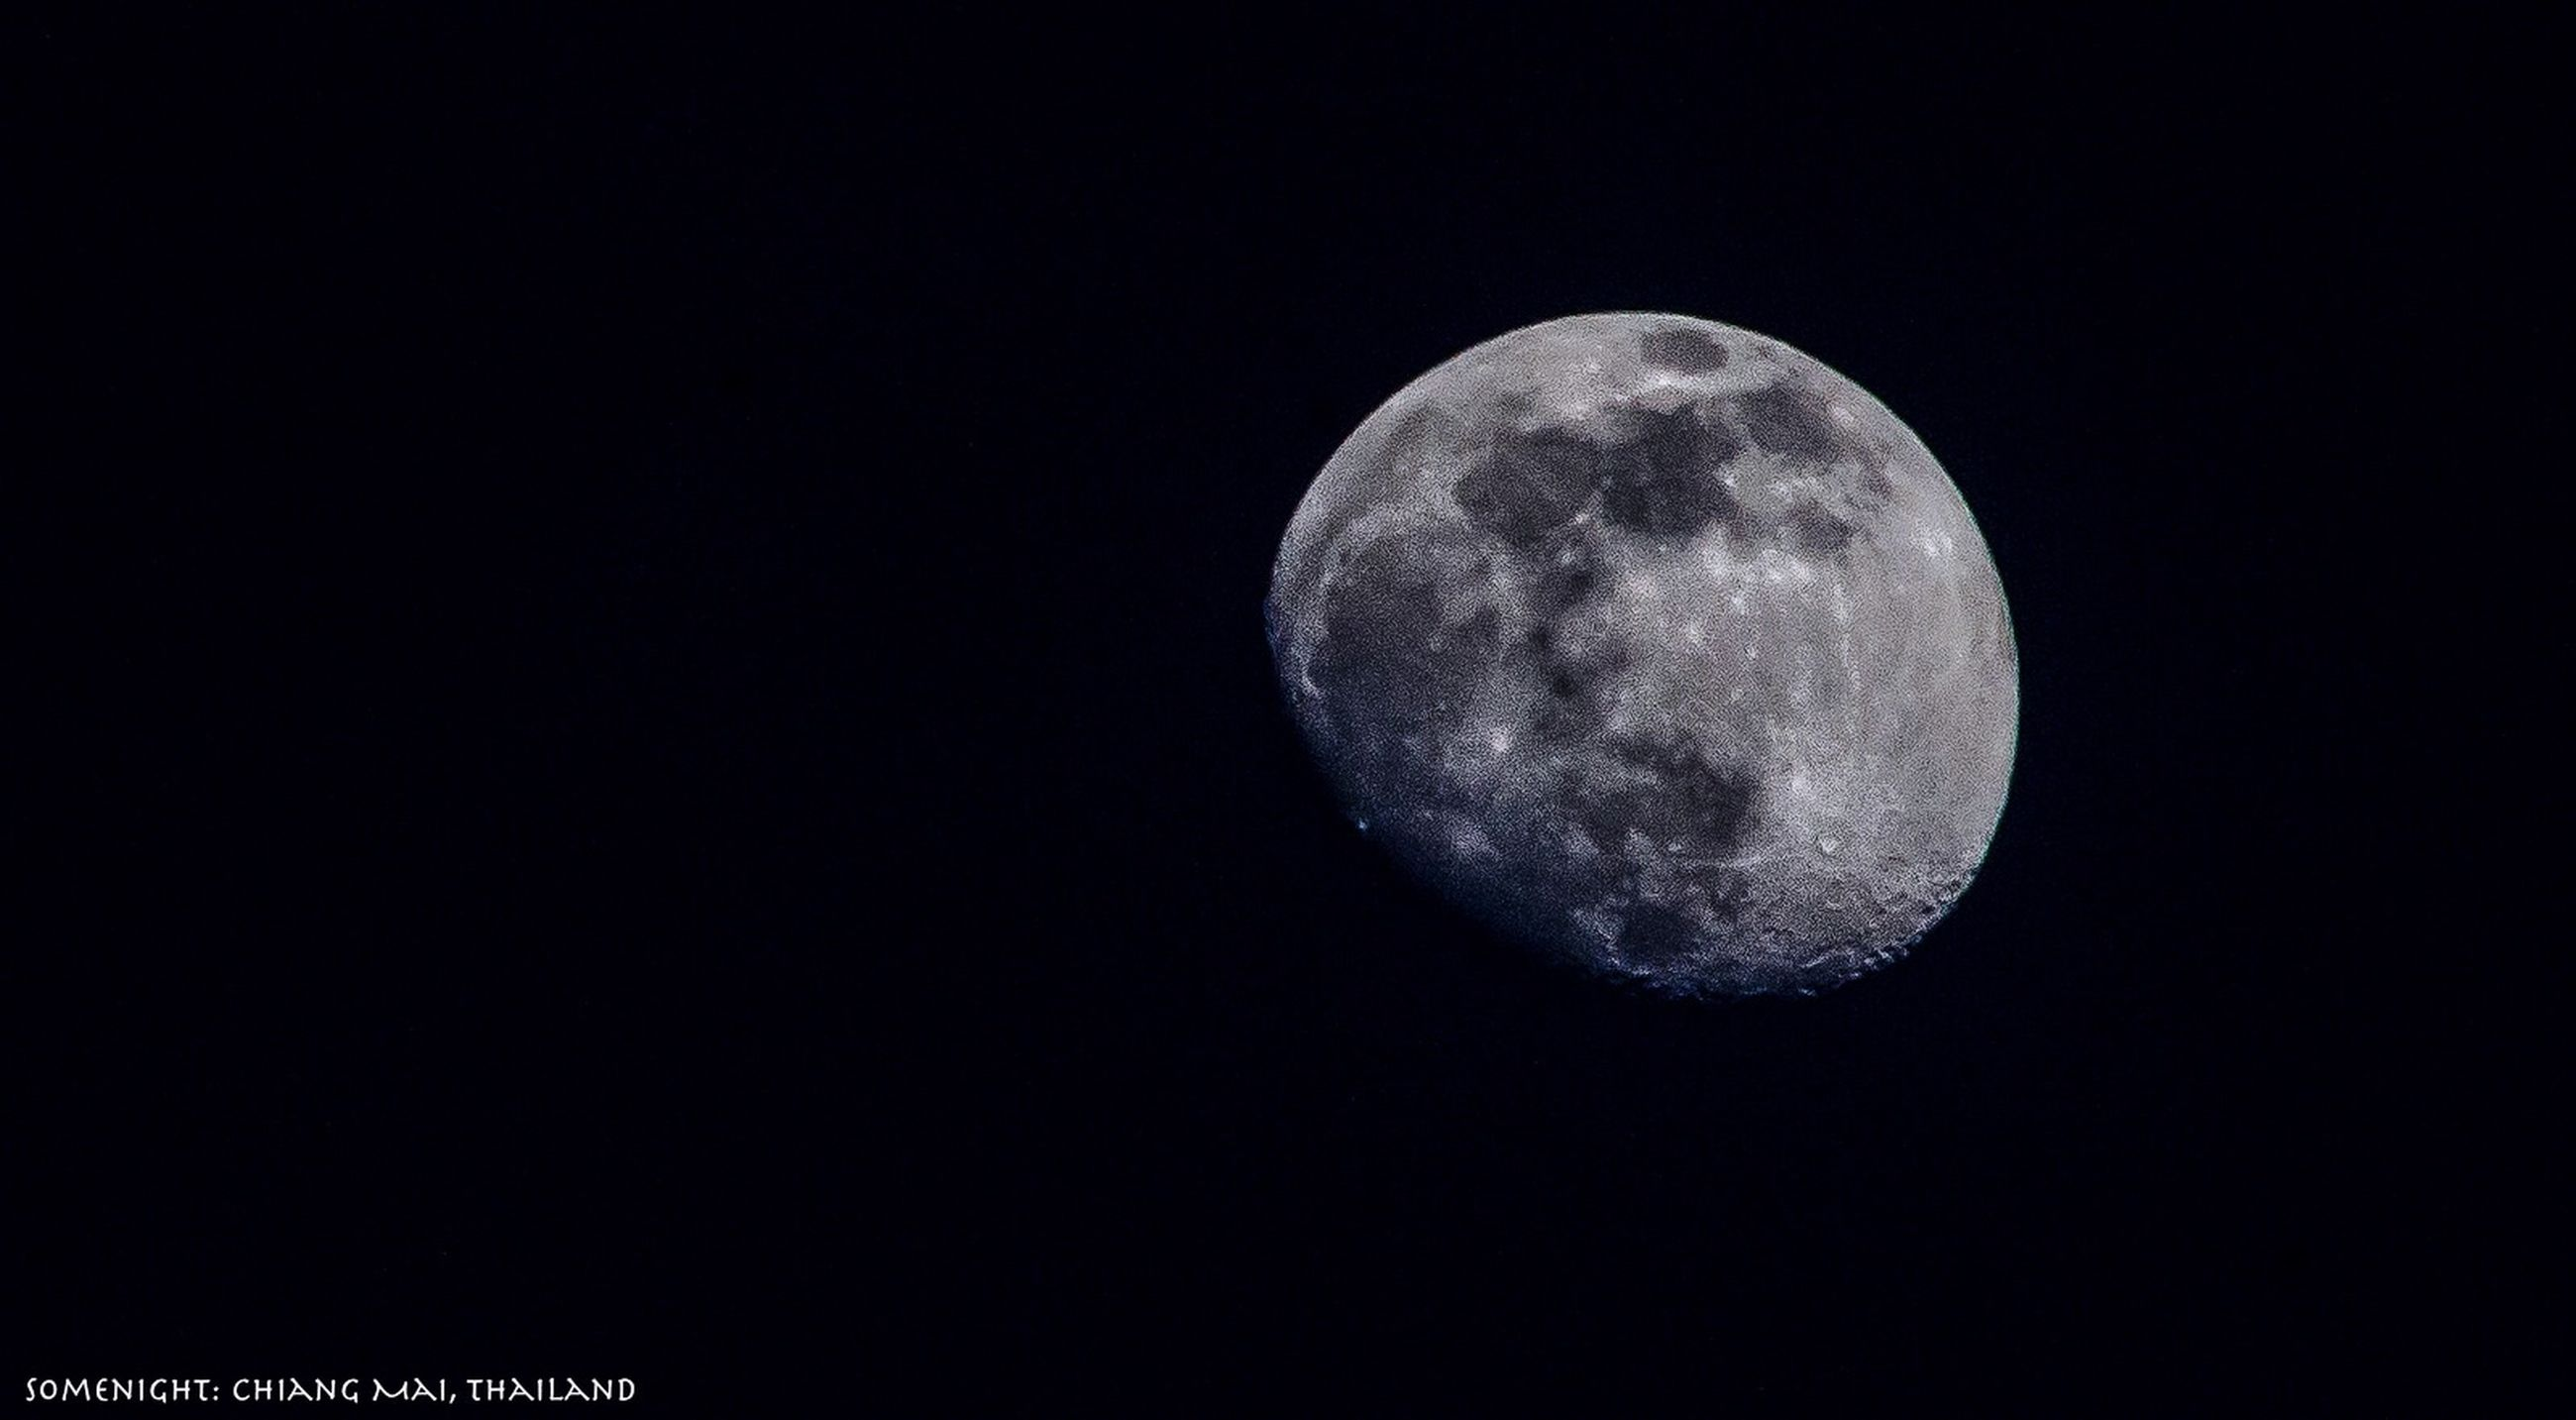 moon, astronomy, night, full moon, circle, planetary moon, copy space, moon surface, space exploration, sphere, low angle view, dark, discovery, sky, beauty in nature, clear sky, scenics, tranquil scene, tranquility, nature